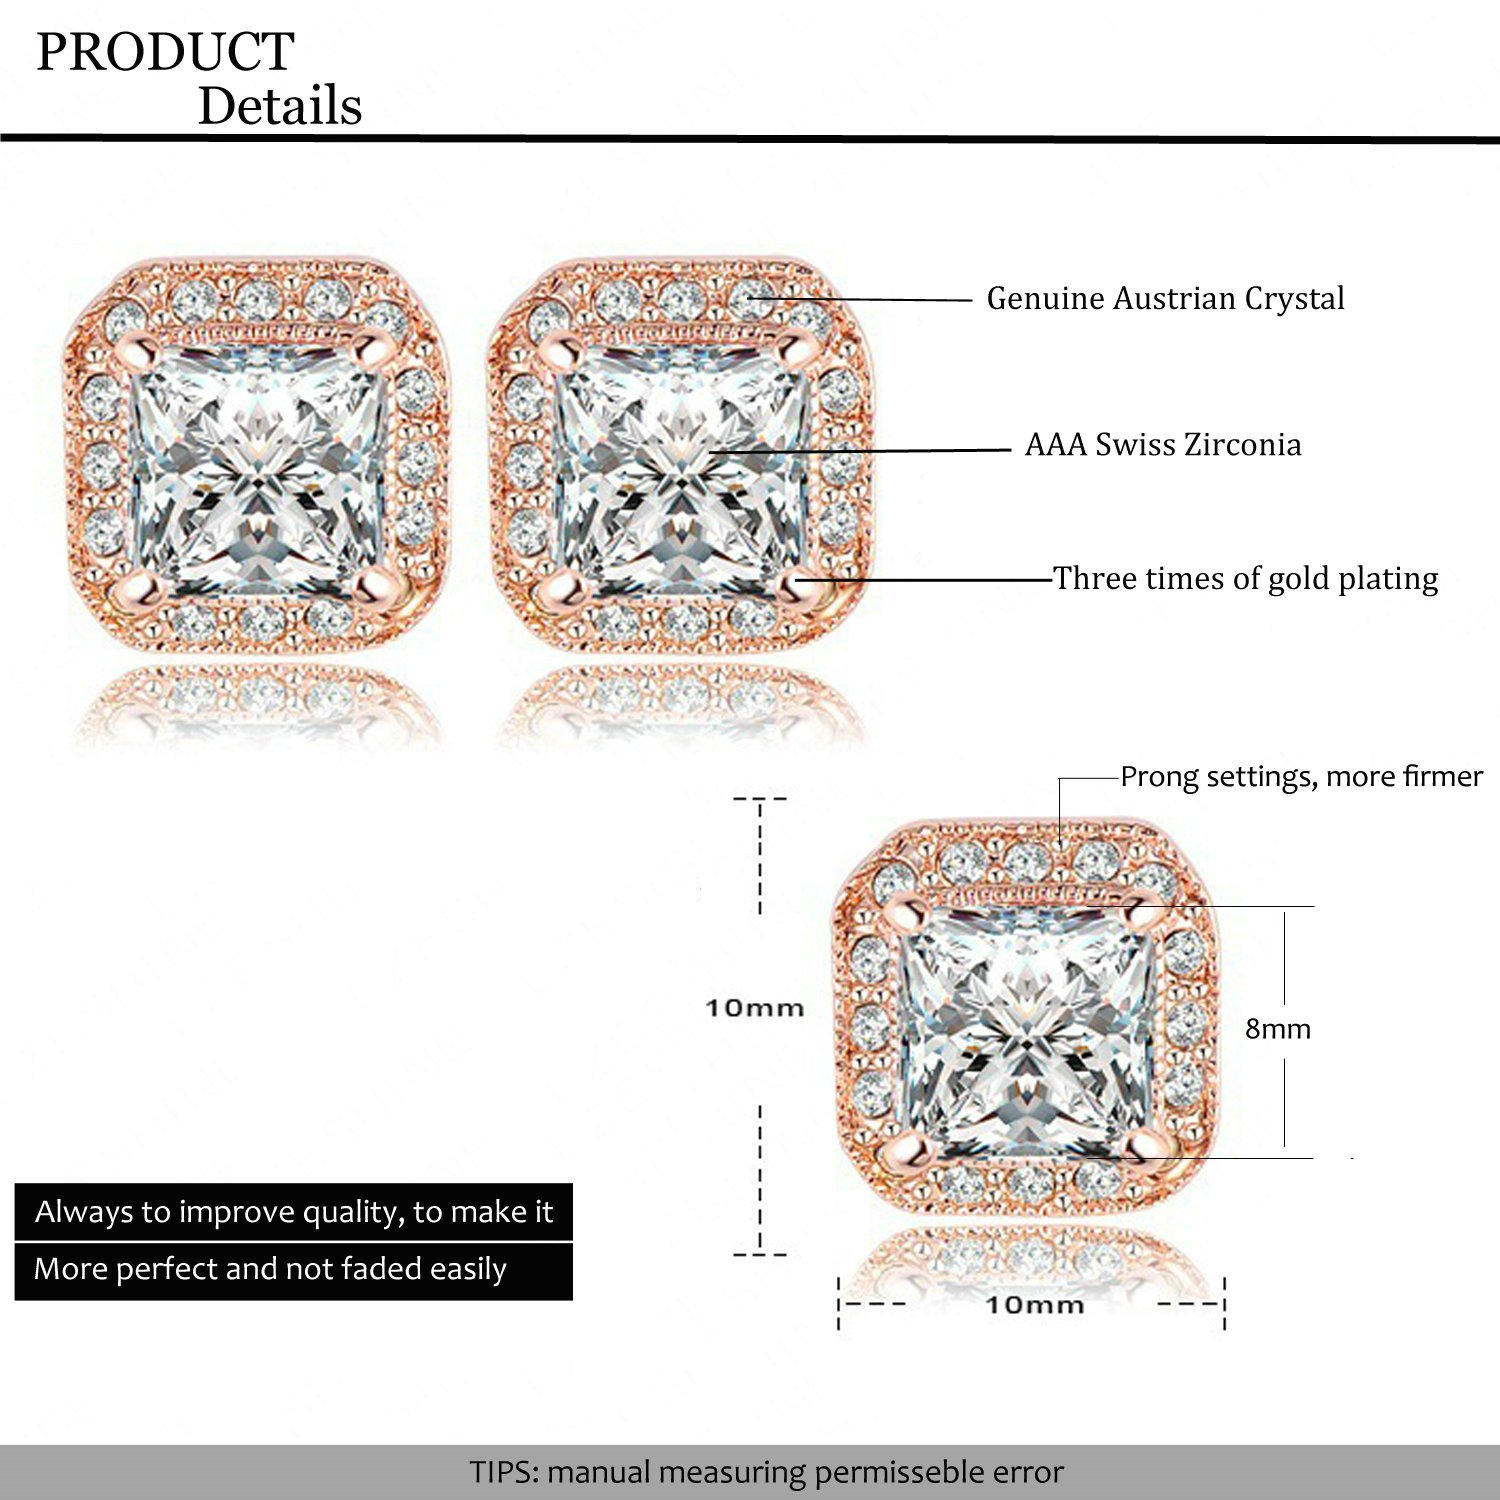 AnaZoz Jewelry 18K Gold Plated Square Stud Earring Rose Gold Plate/Platinum Plated SWA Elements Austrian Crystals Earrings by AnaZoz (Image #2)